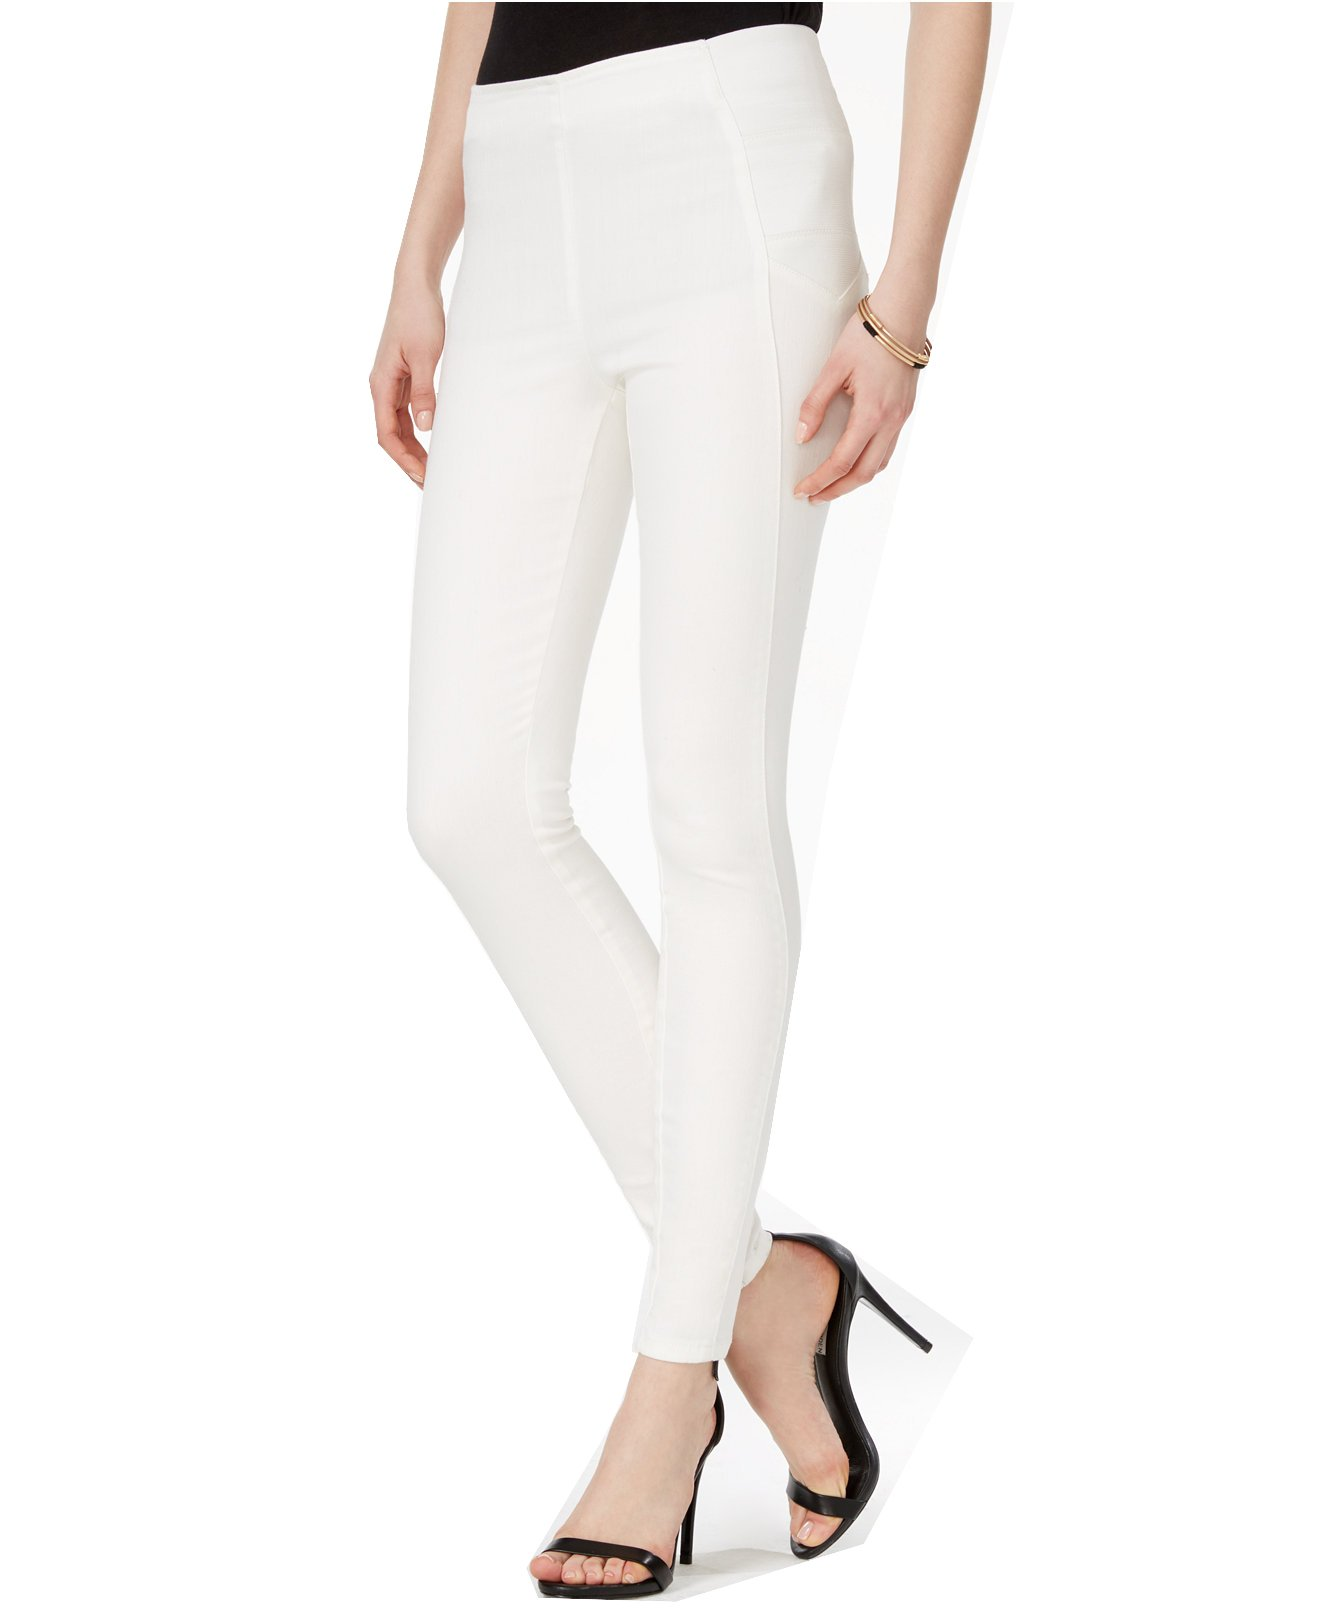 GUESS Women's Pull-On Skinny Jeggings (X-Large, Silicone Rinse)